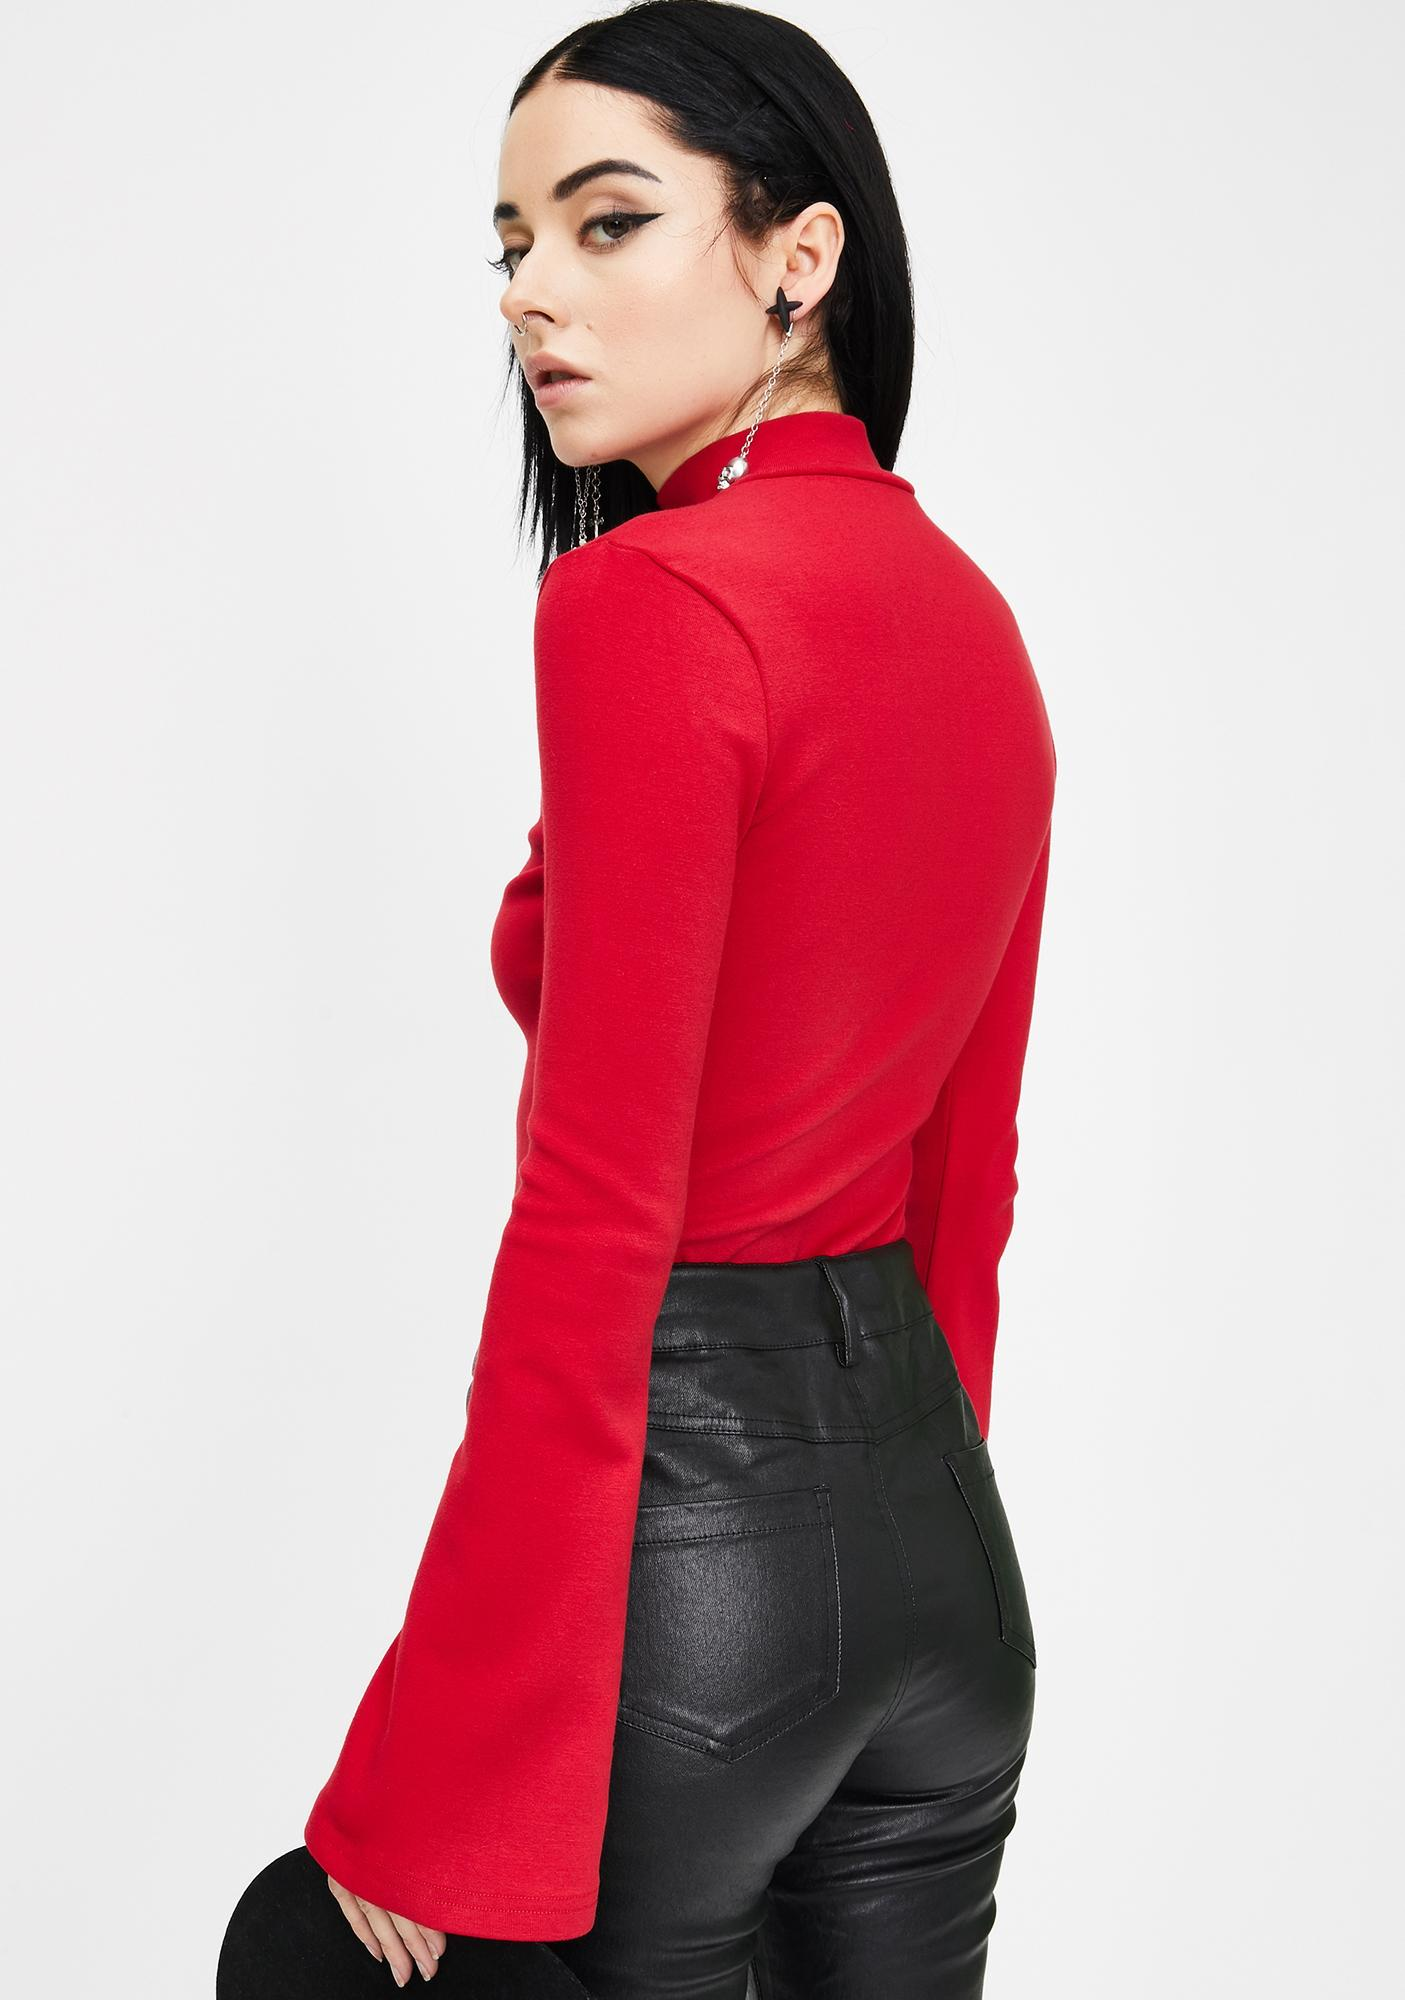 Punk Rave Red Fortune-Telling Witch Top